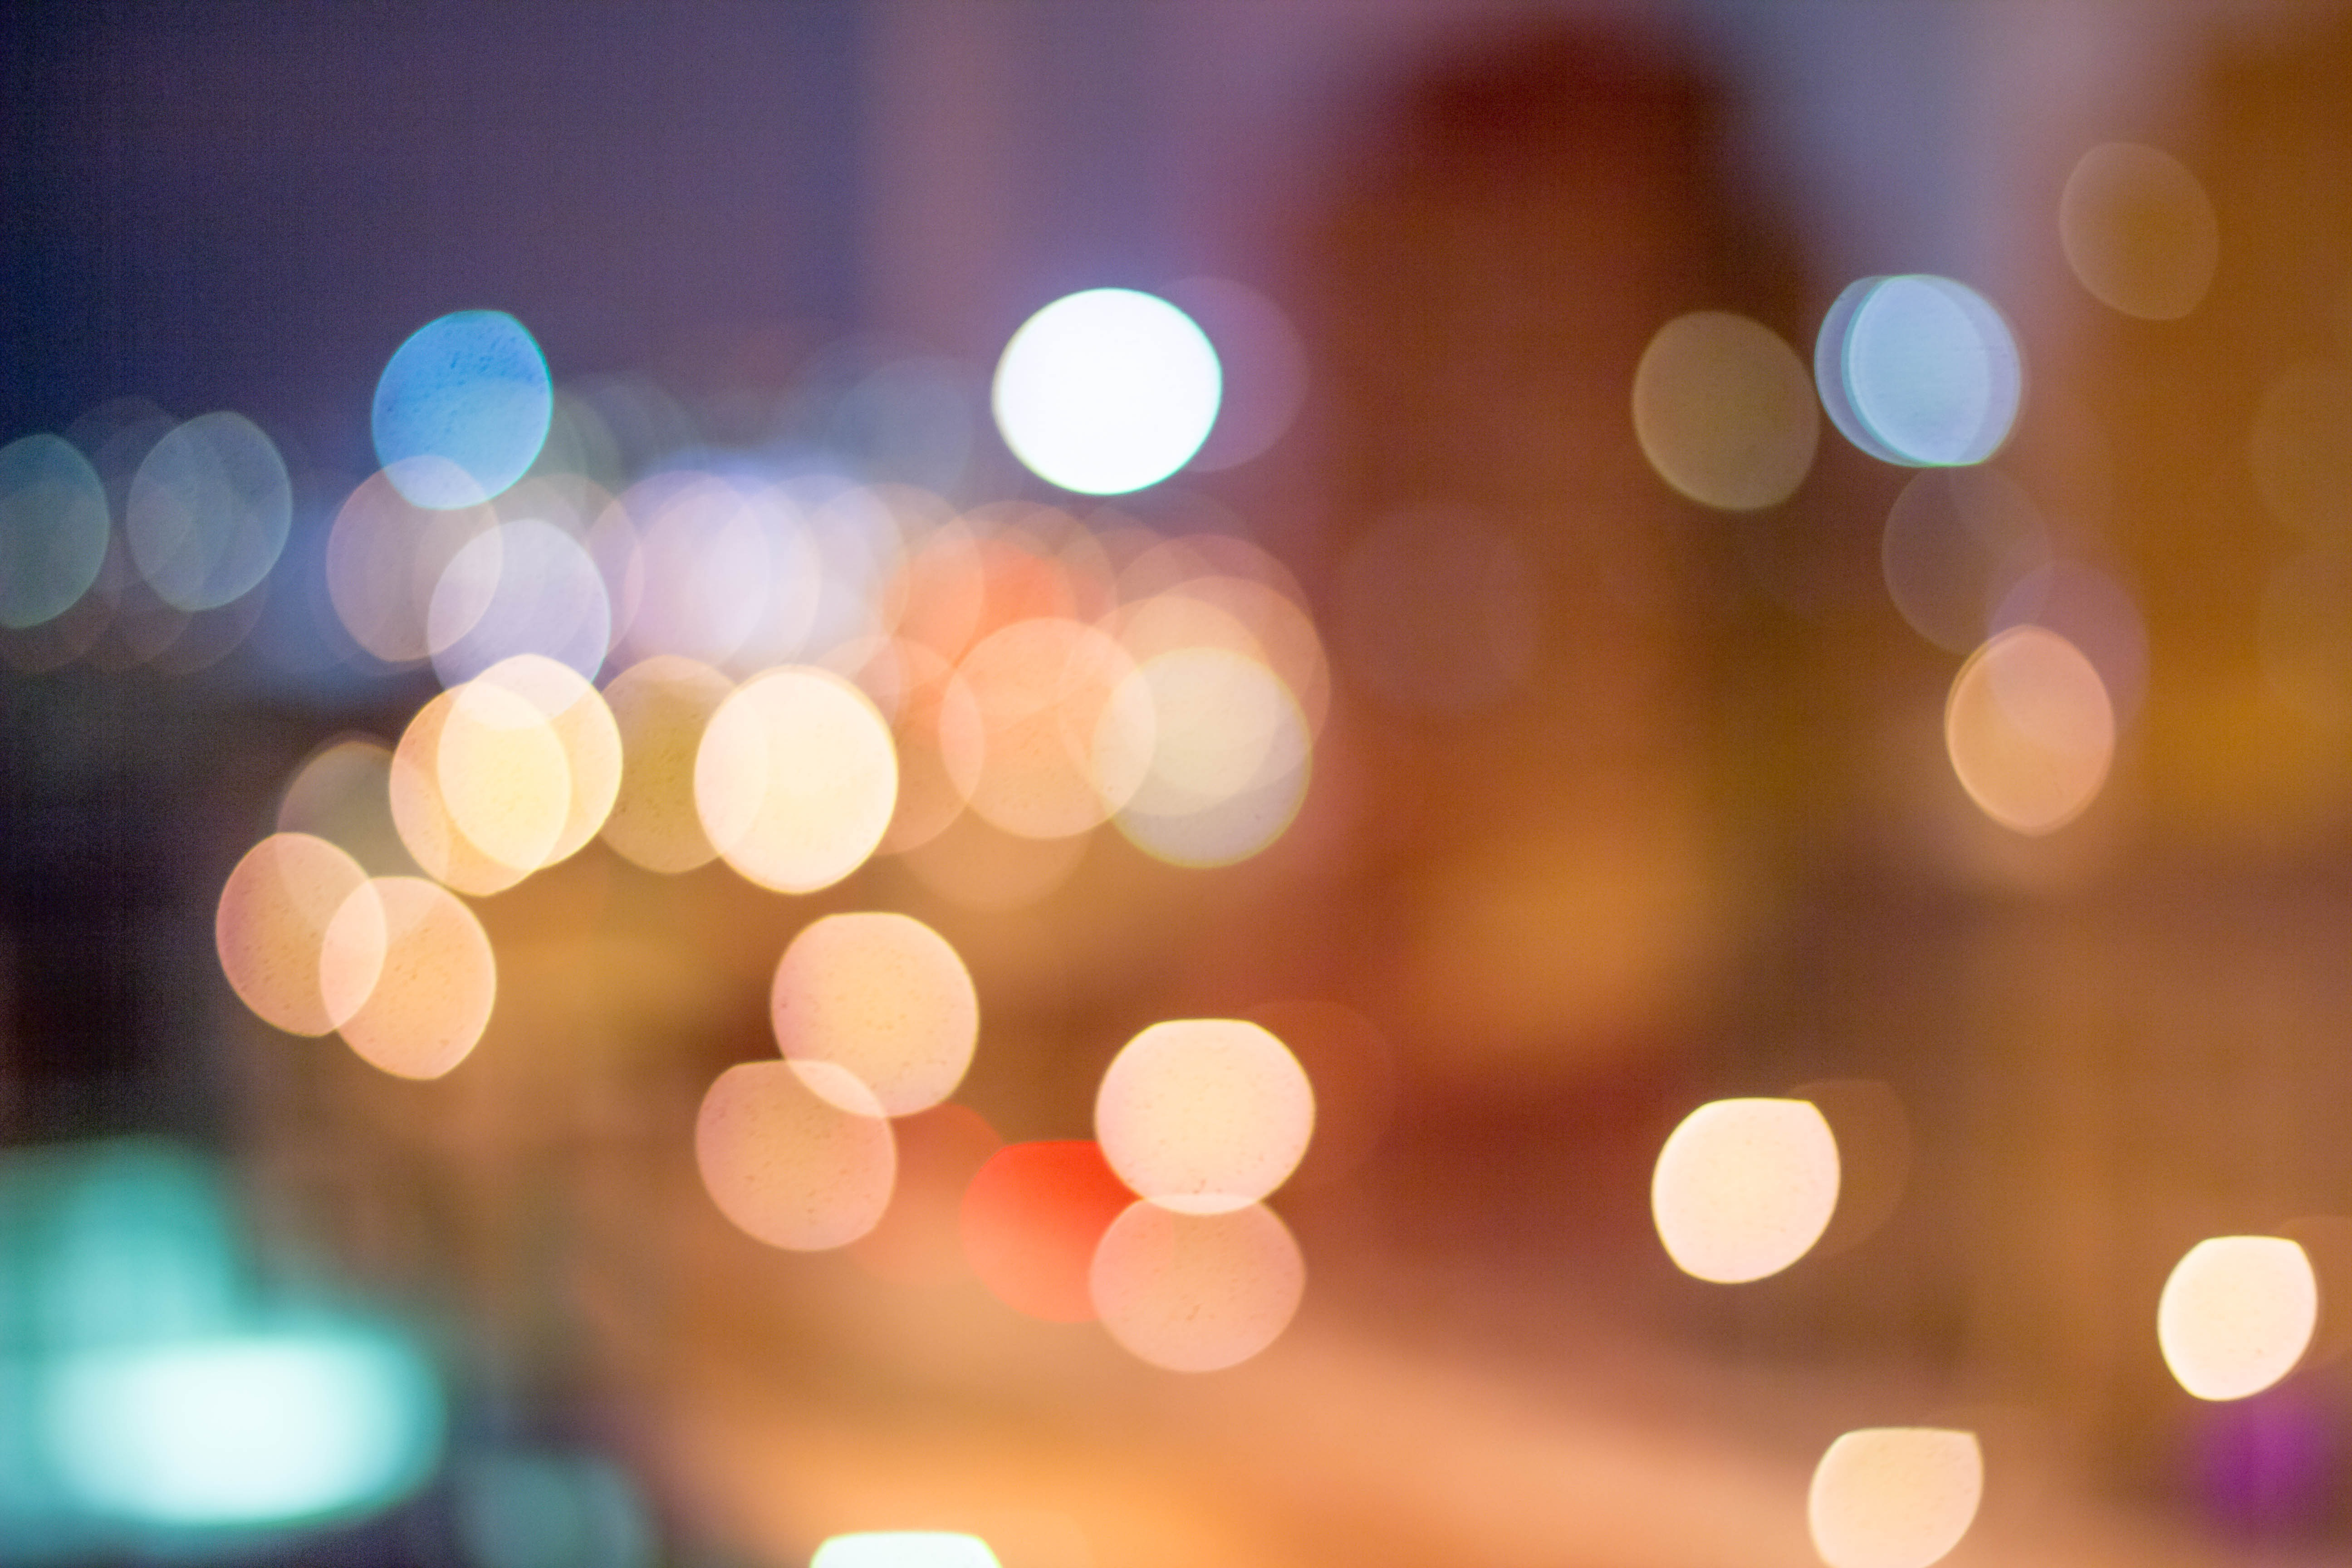 Instagram Car Wallpapers Round Faded Lights During Nighttime 183 Free Stock Photo